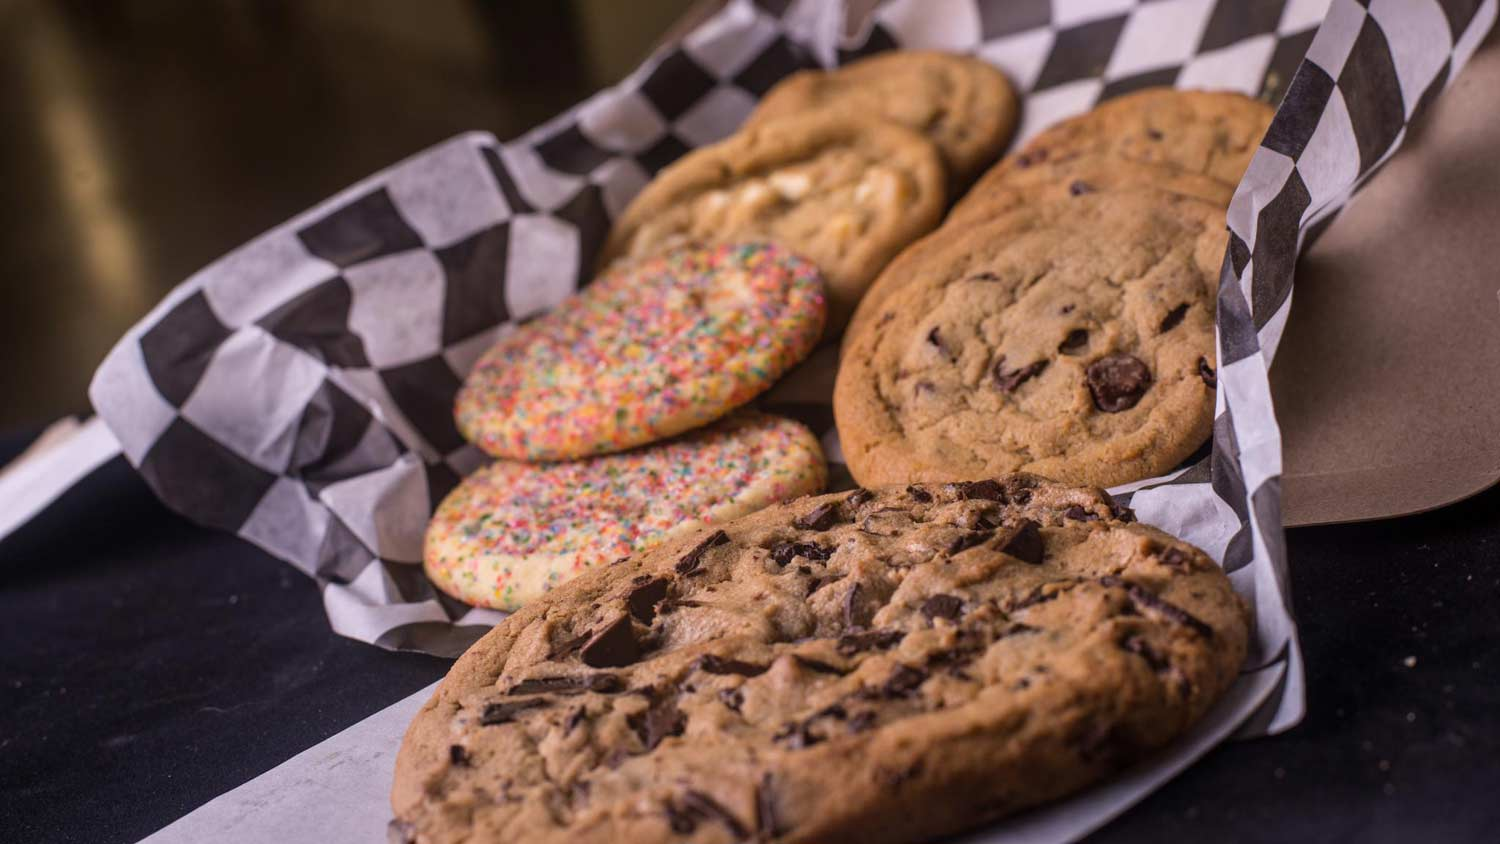 A display of cookies in checkered tissue paper